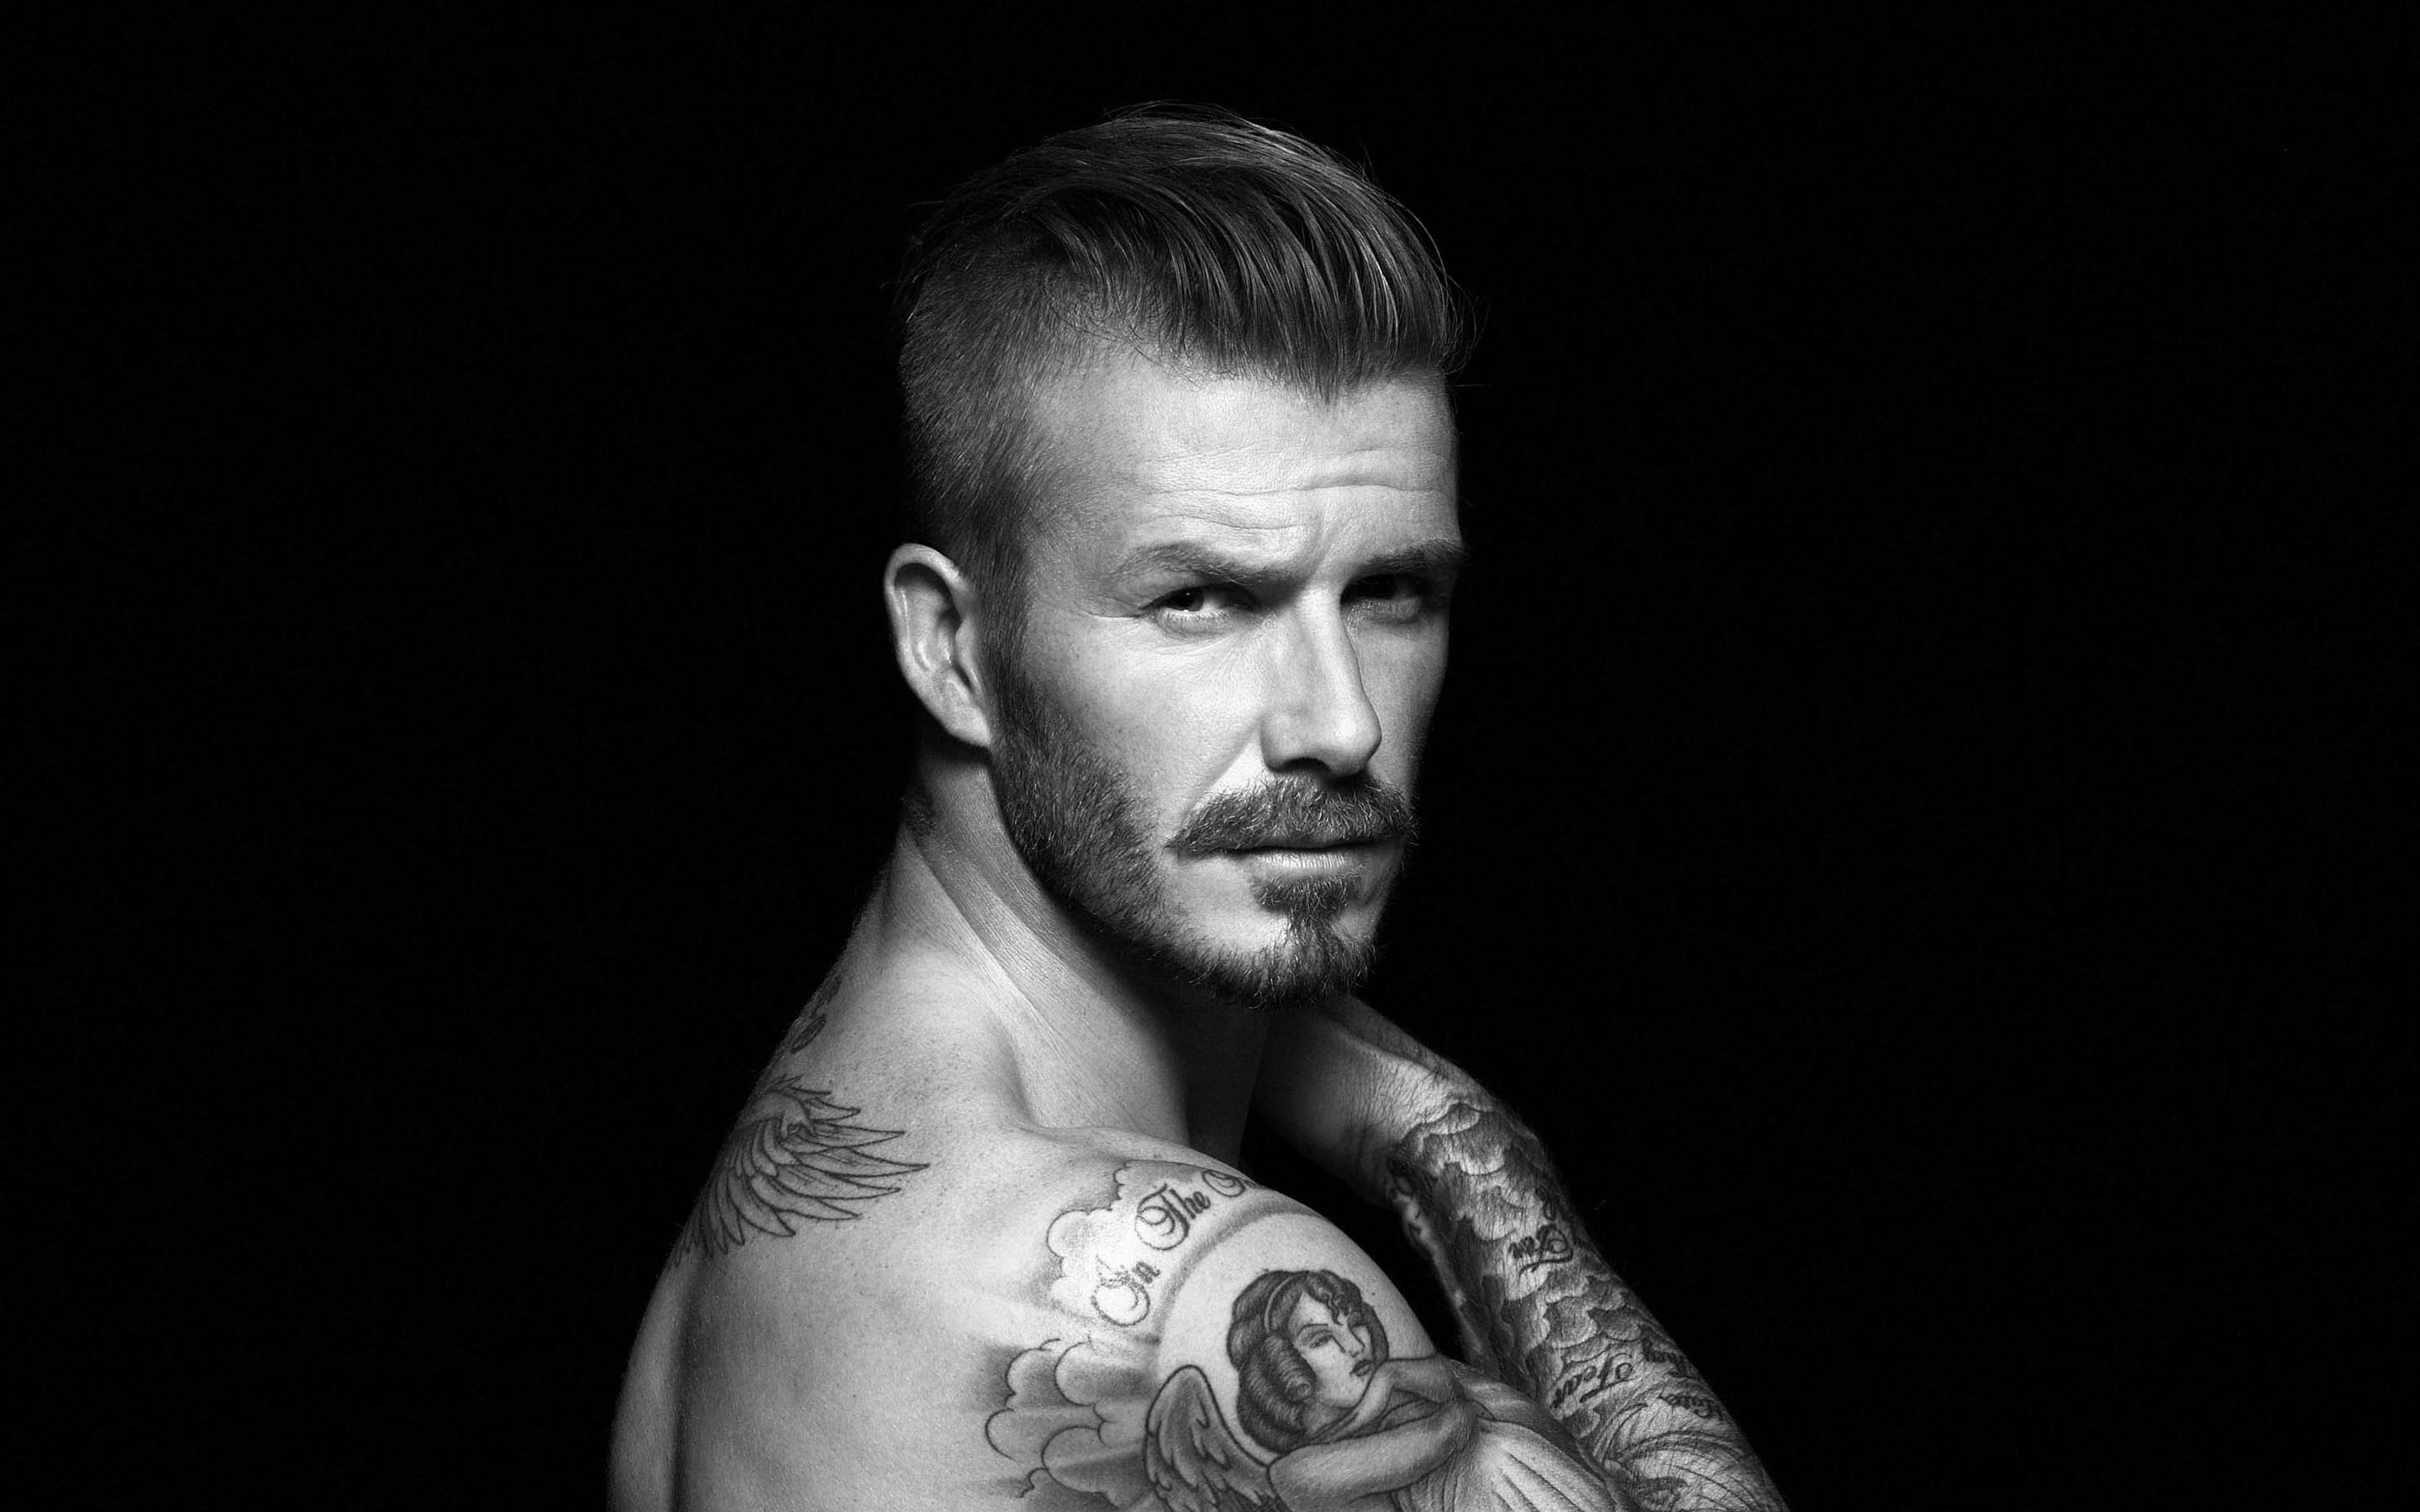 David beckham wallpapers wallpaper cave david beckham wallpapers full hd wallpaper search voltagebd